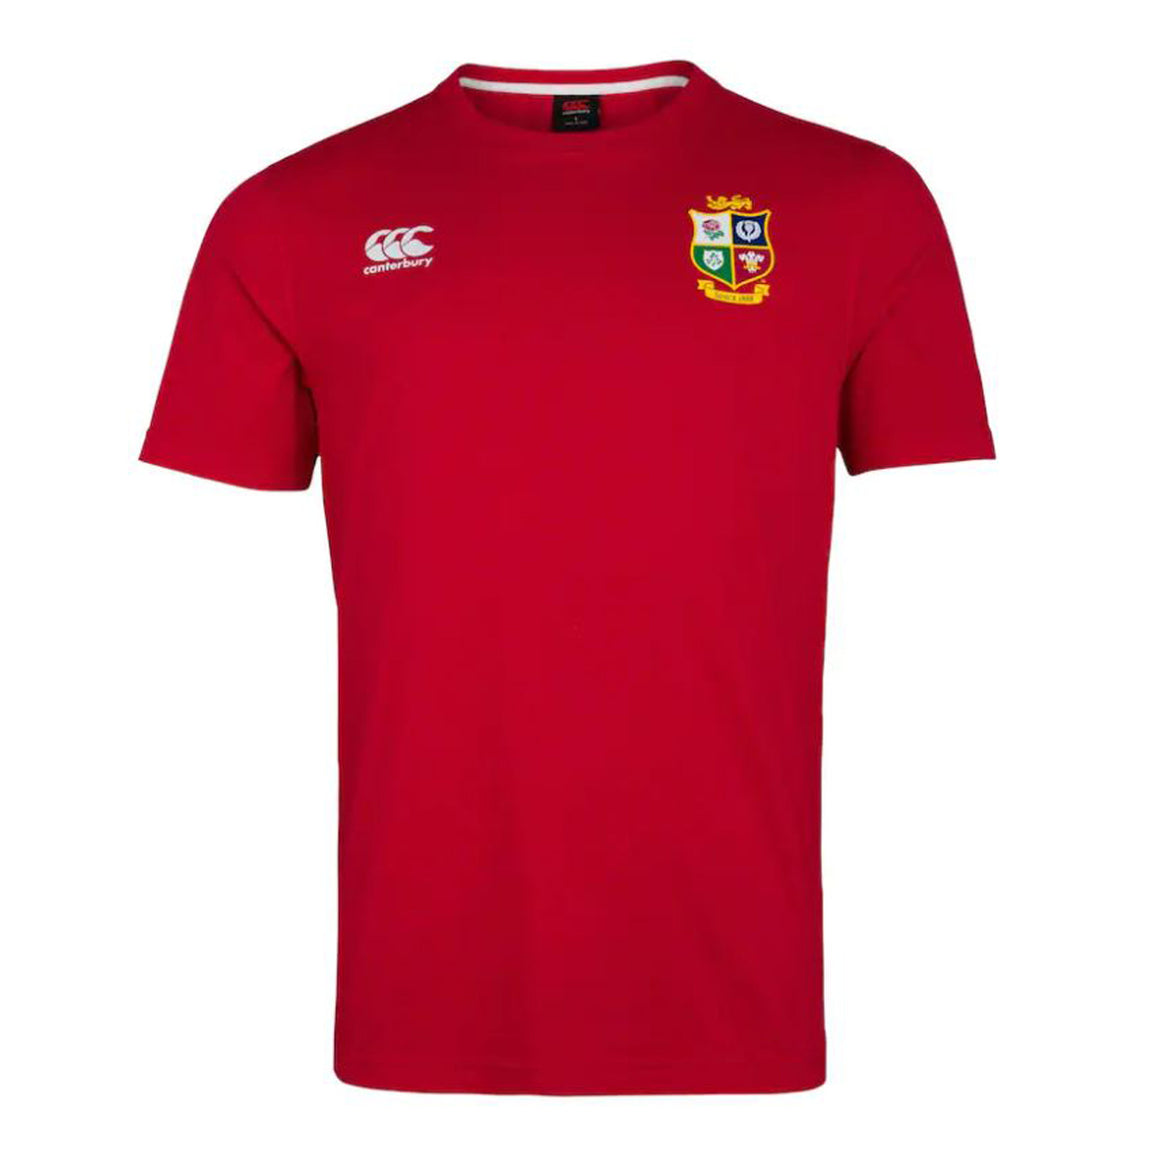 British and Irish Lions Cotton Jersey Tee for Men in Tango Red